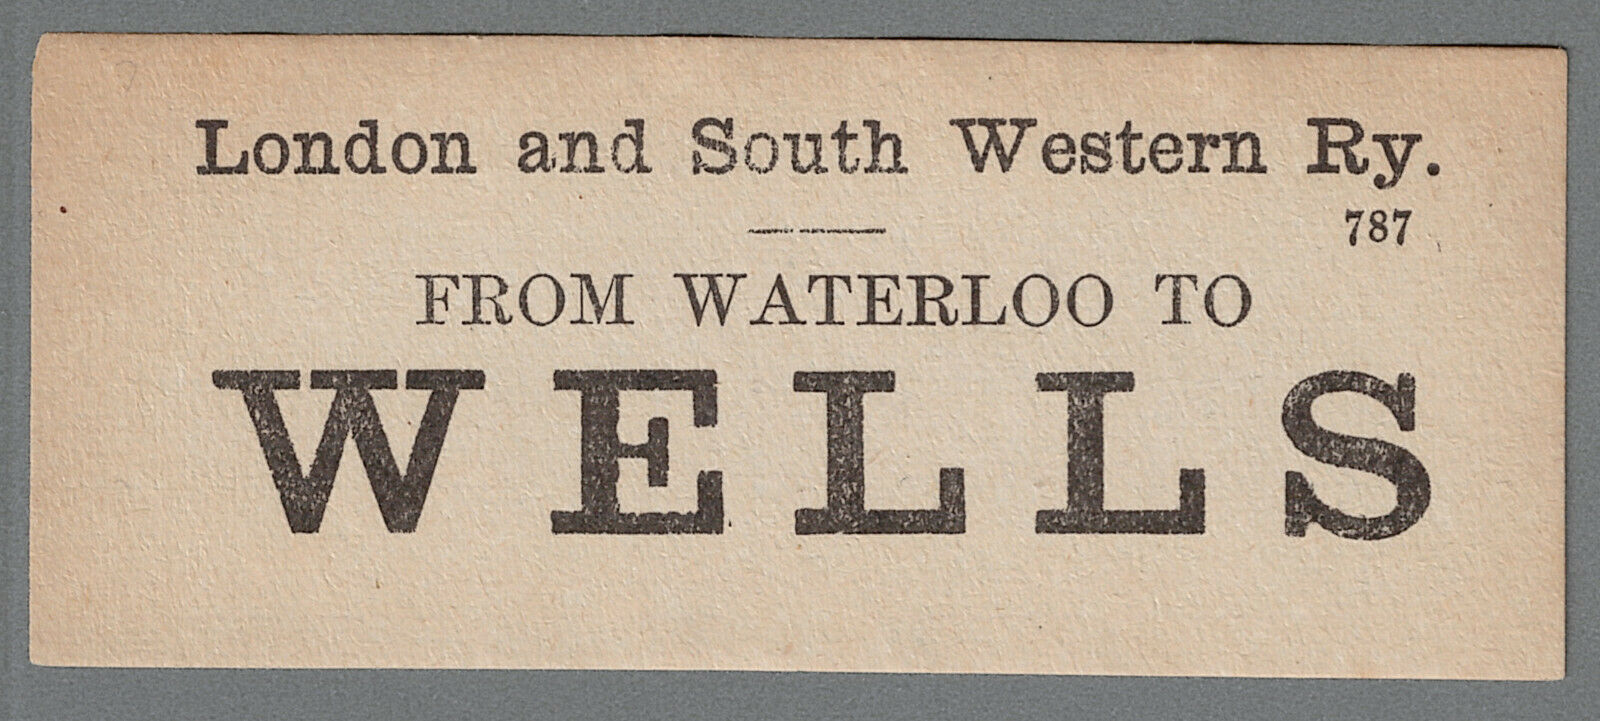 LONDON and SOUTH WESTERN RAILWAY LUGGAGE LABEL - WELLS from Waterloo (Cen.print)